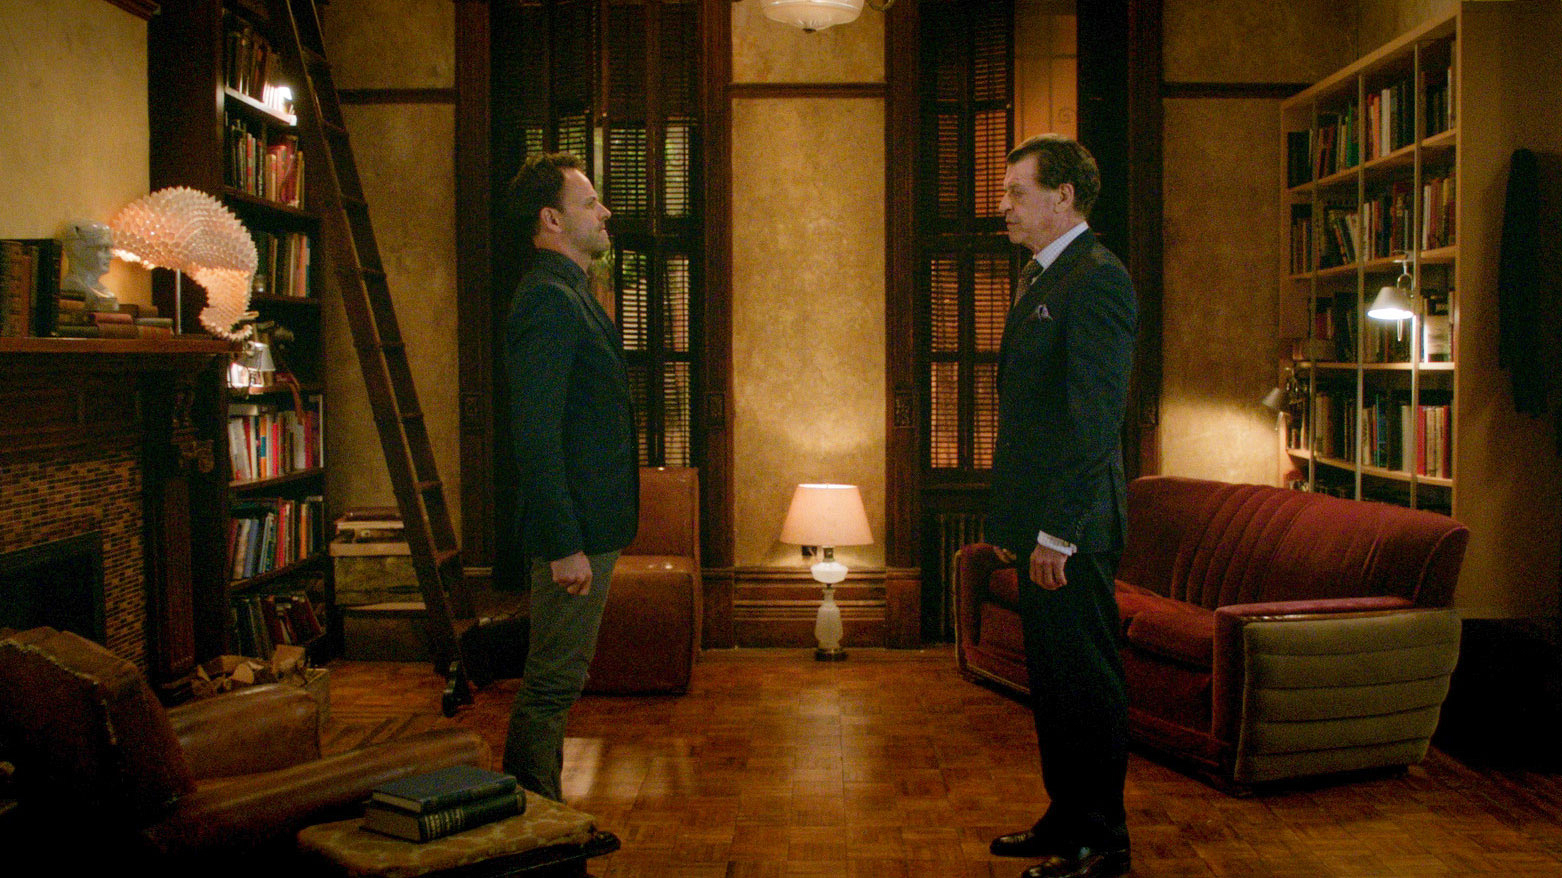 Jonny Lee Miller as Sherlock Holmes and John Noble as Morland Holmes